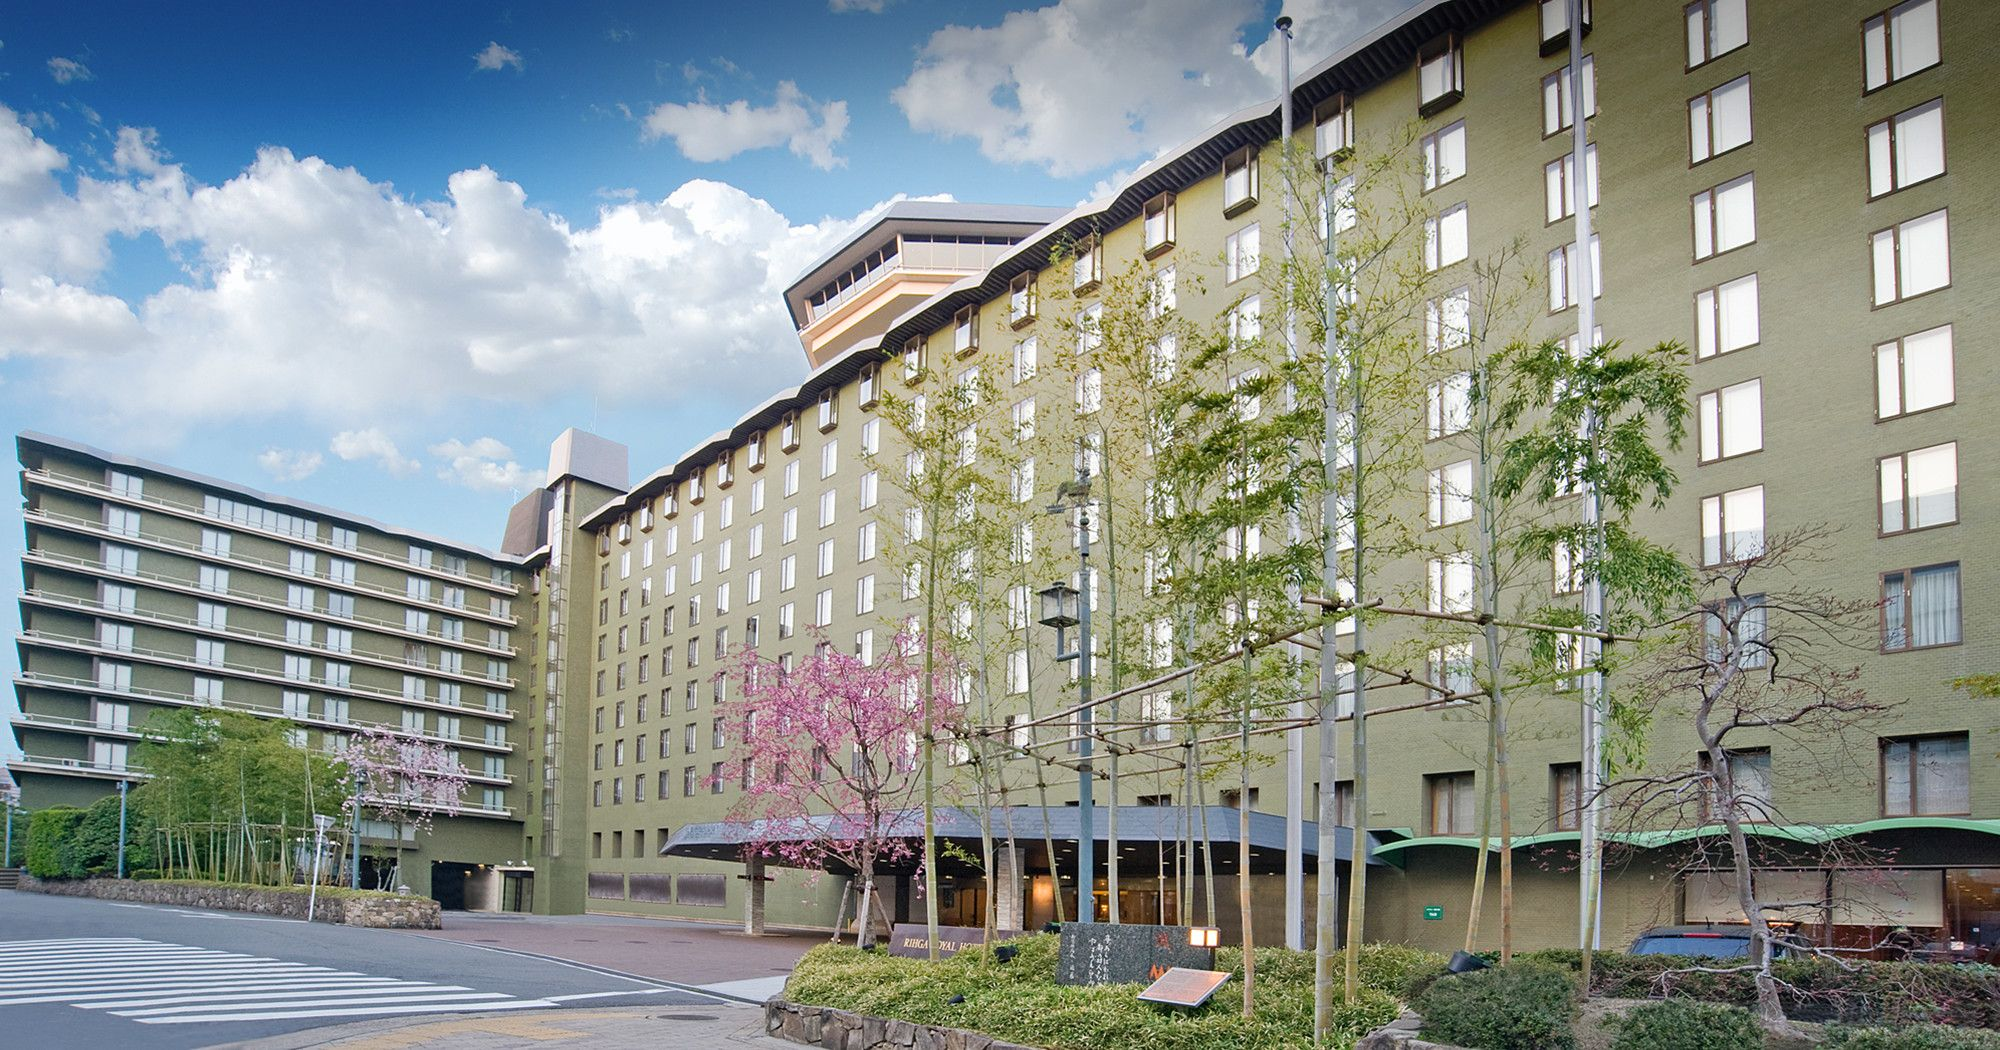 Rihga royal hotel kyoto for Hotels kyoto